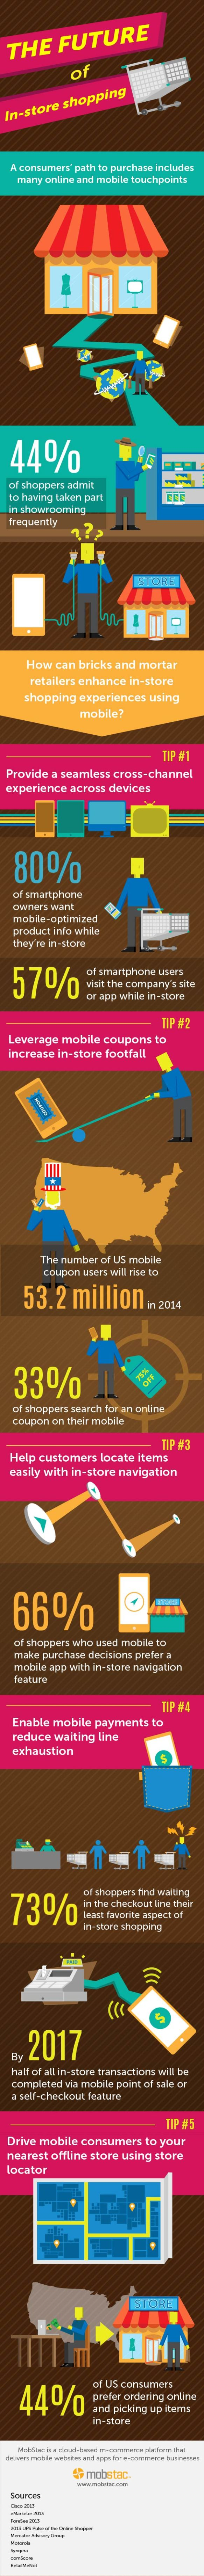 the-future-of-in-store-shopping-mobile-retail-infographic-mobstac